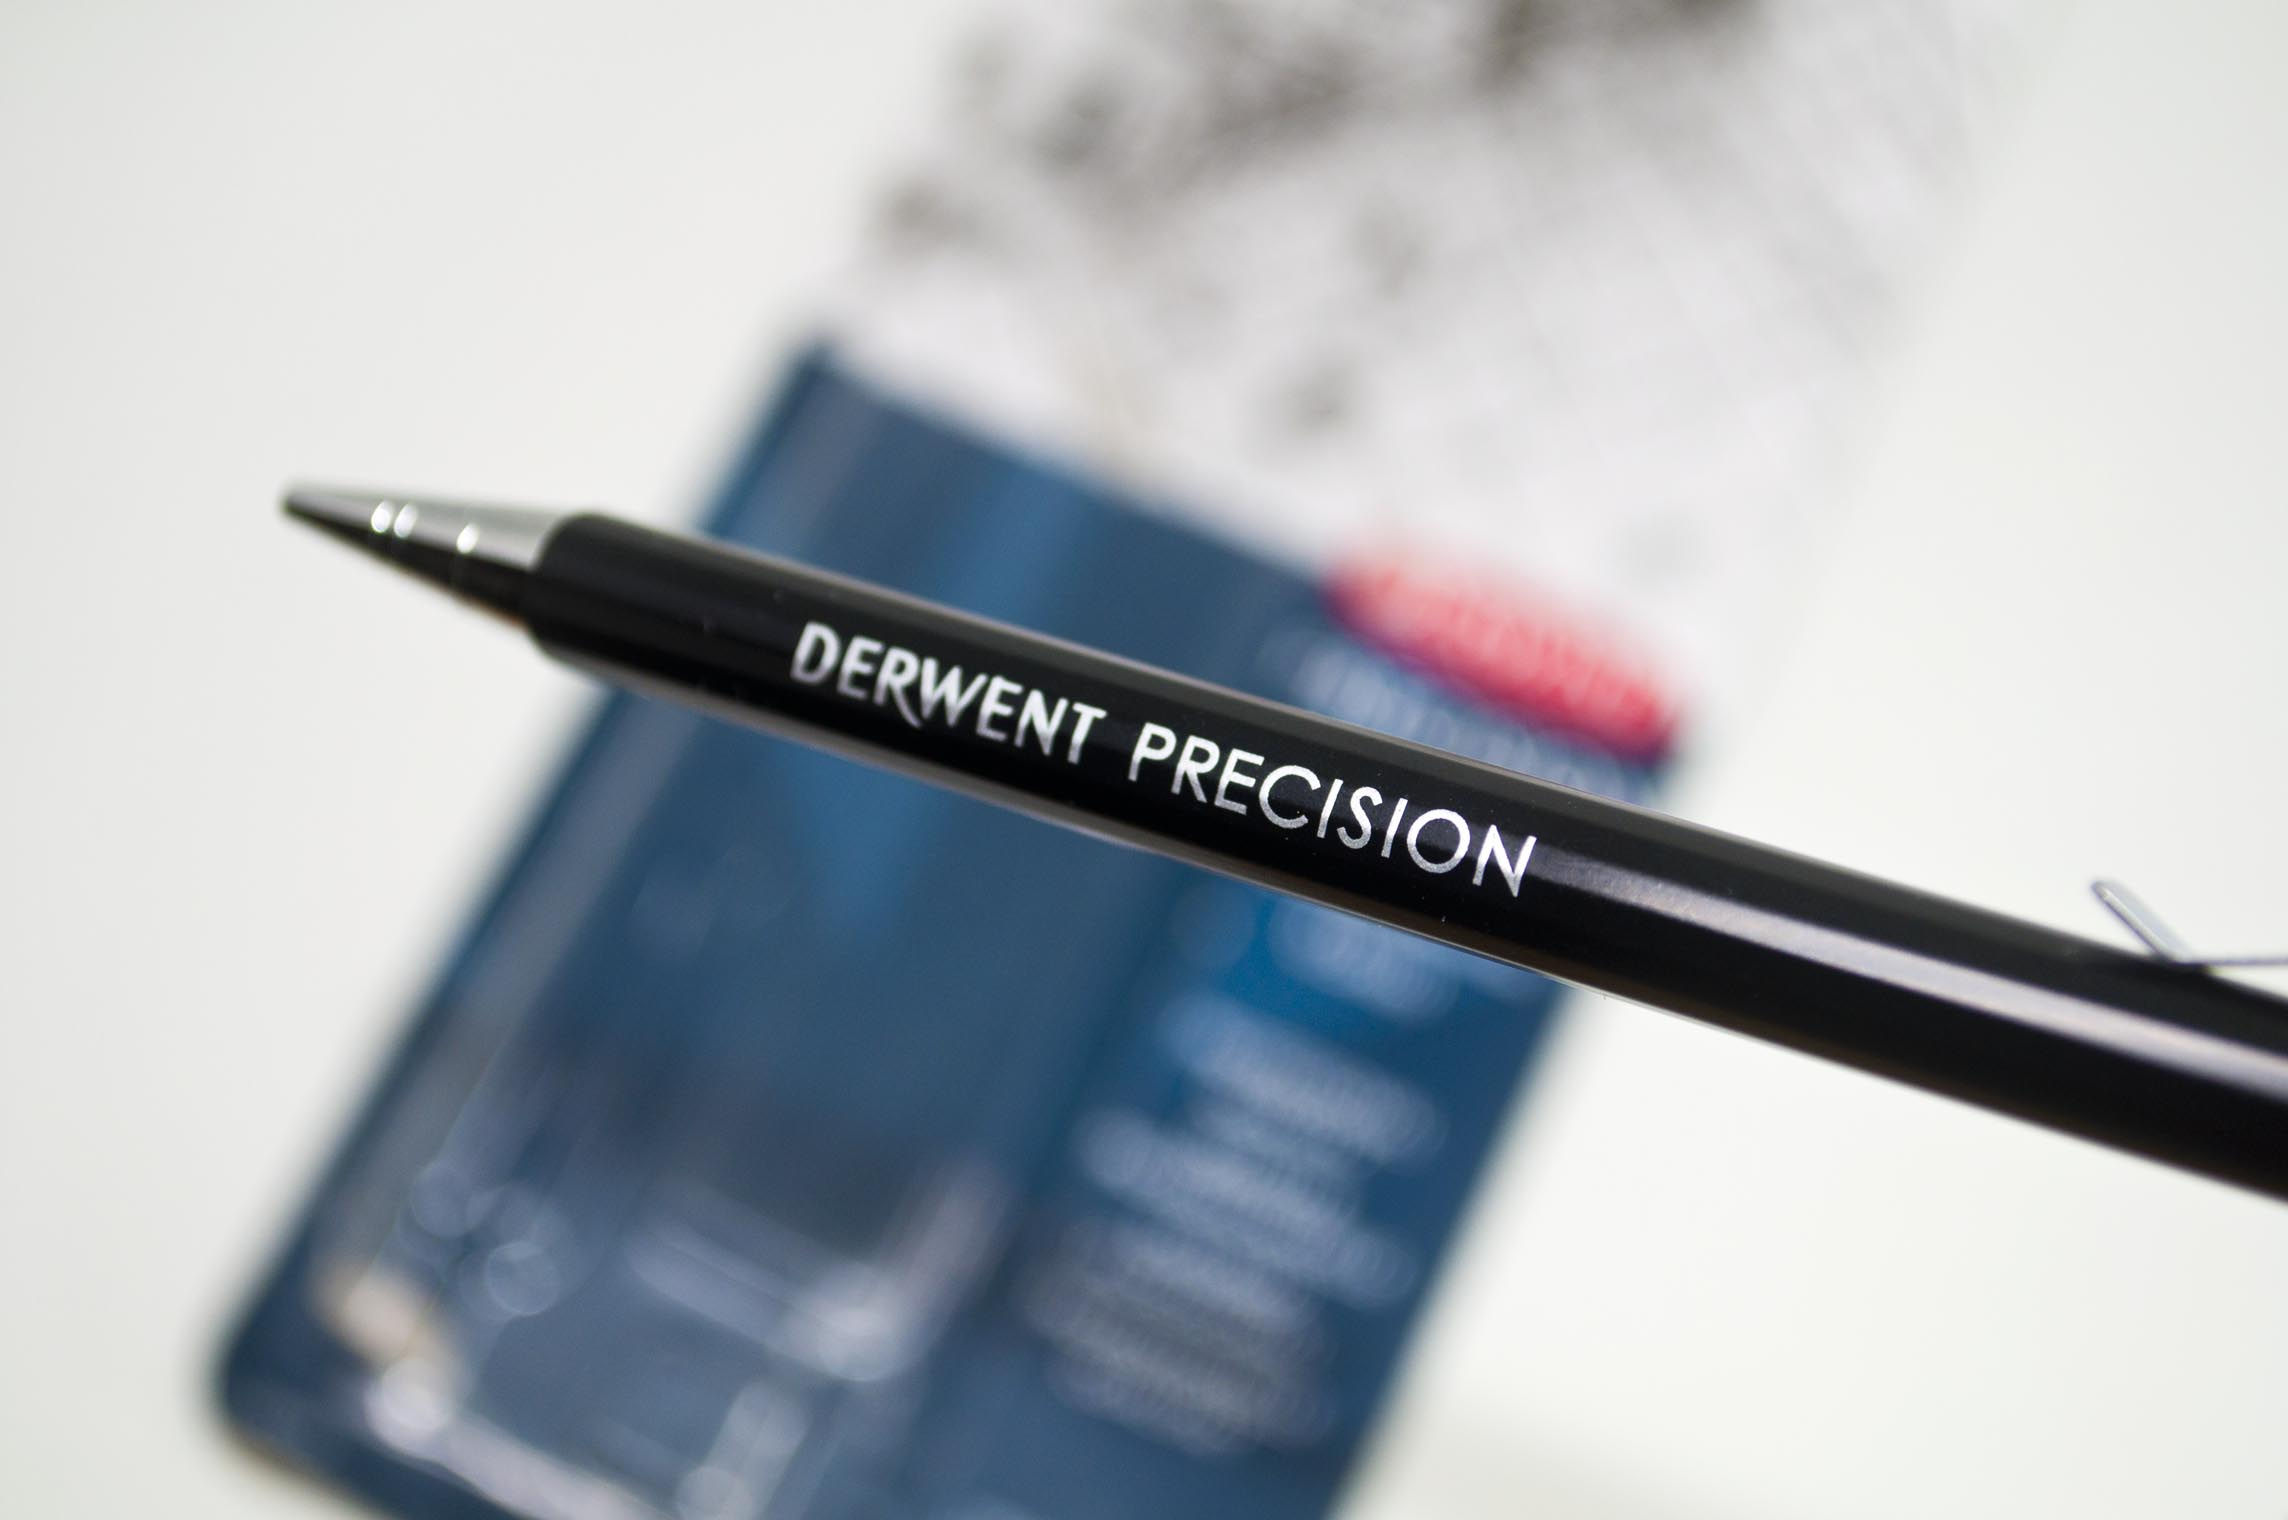 Pencil Barrel With Derwent Precision Printed